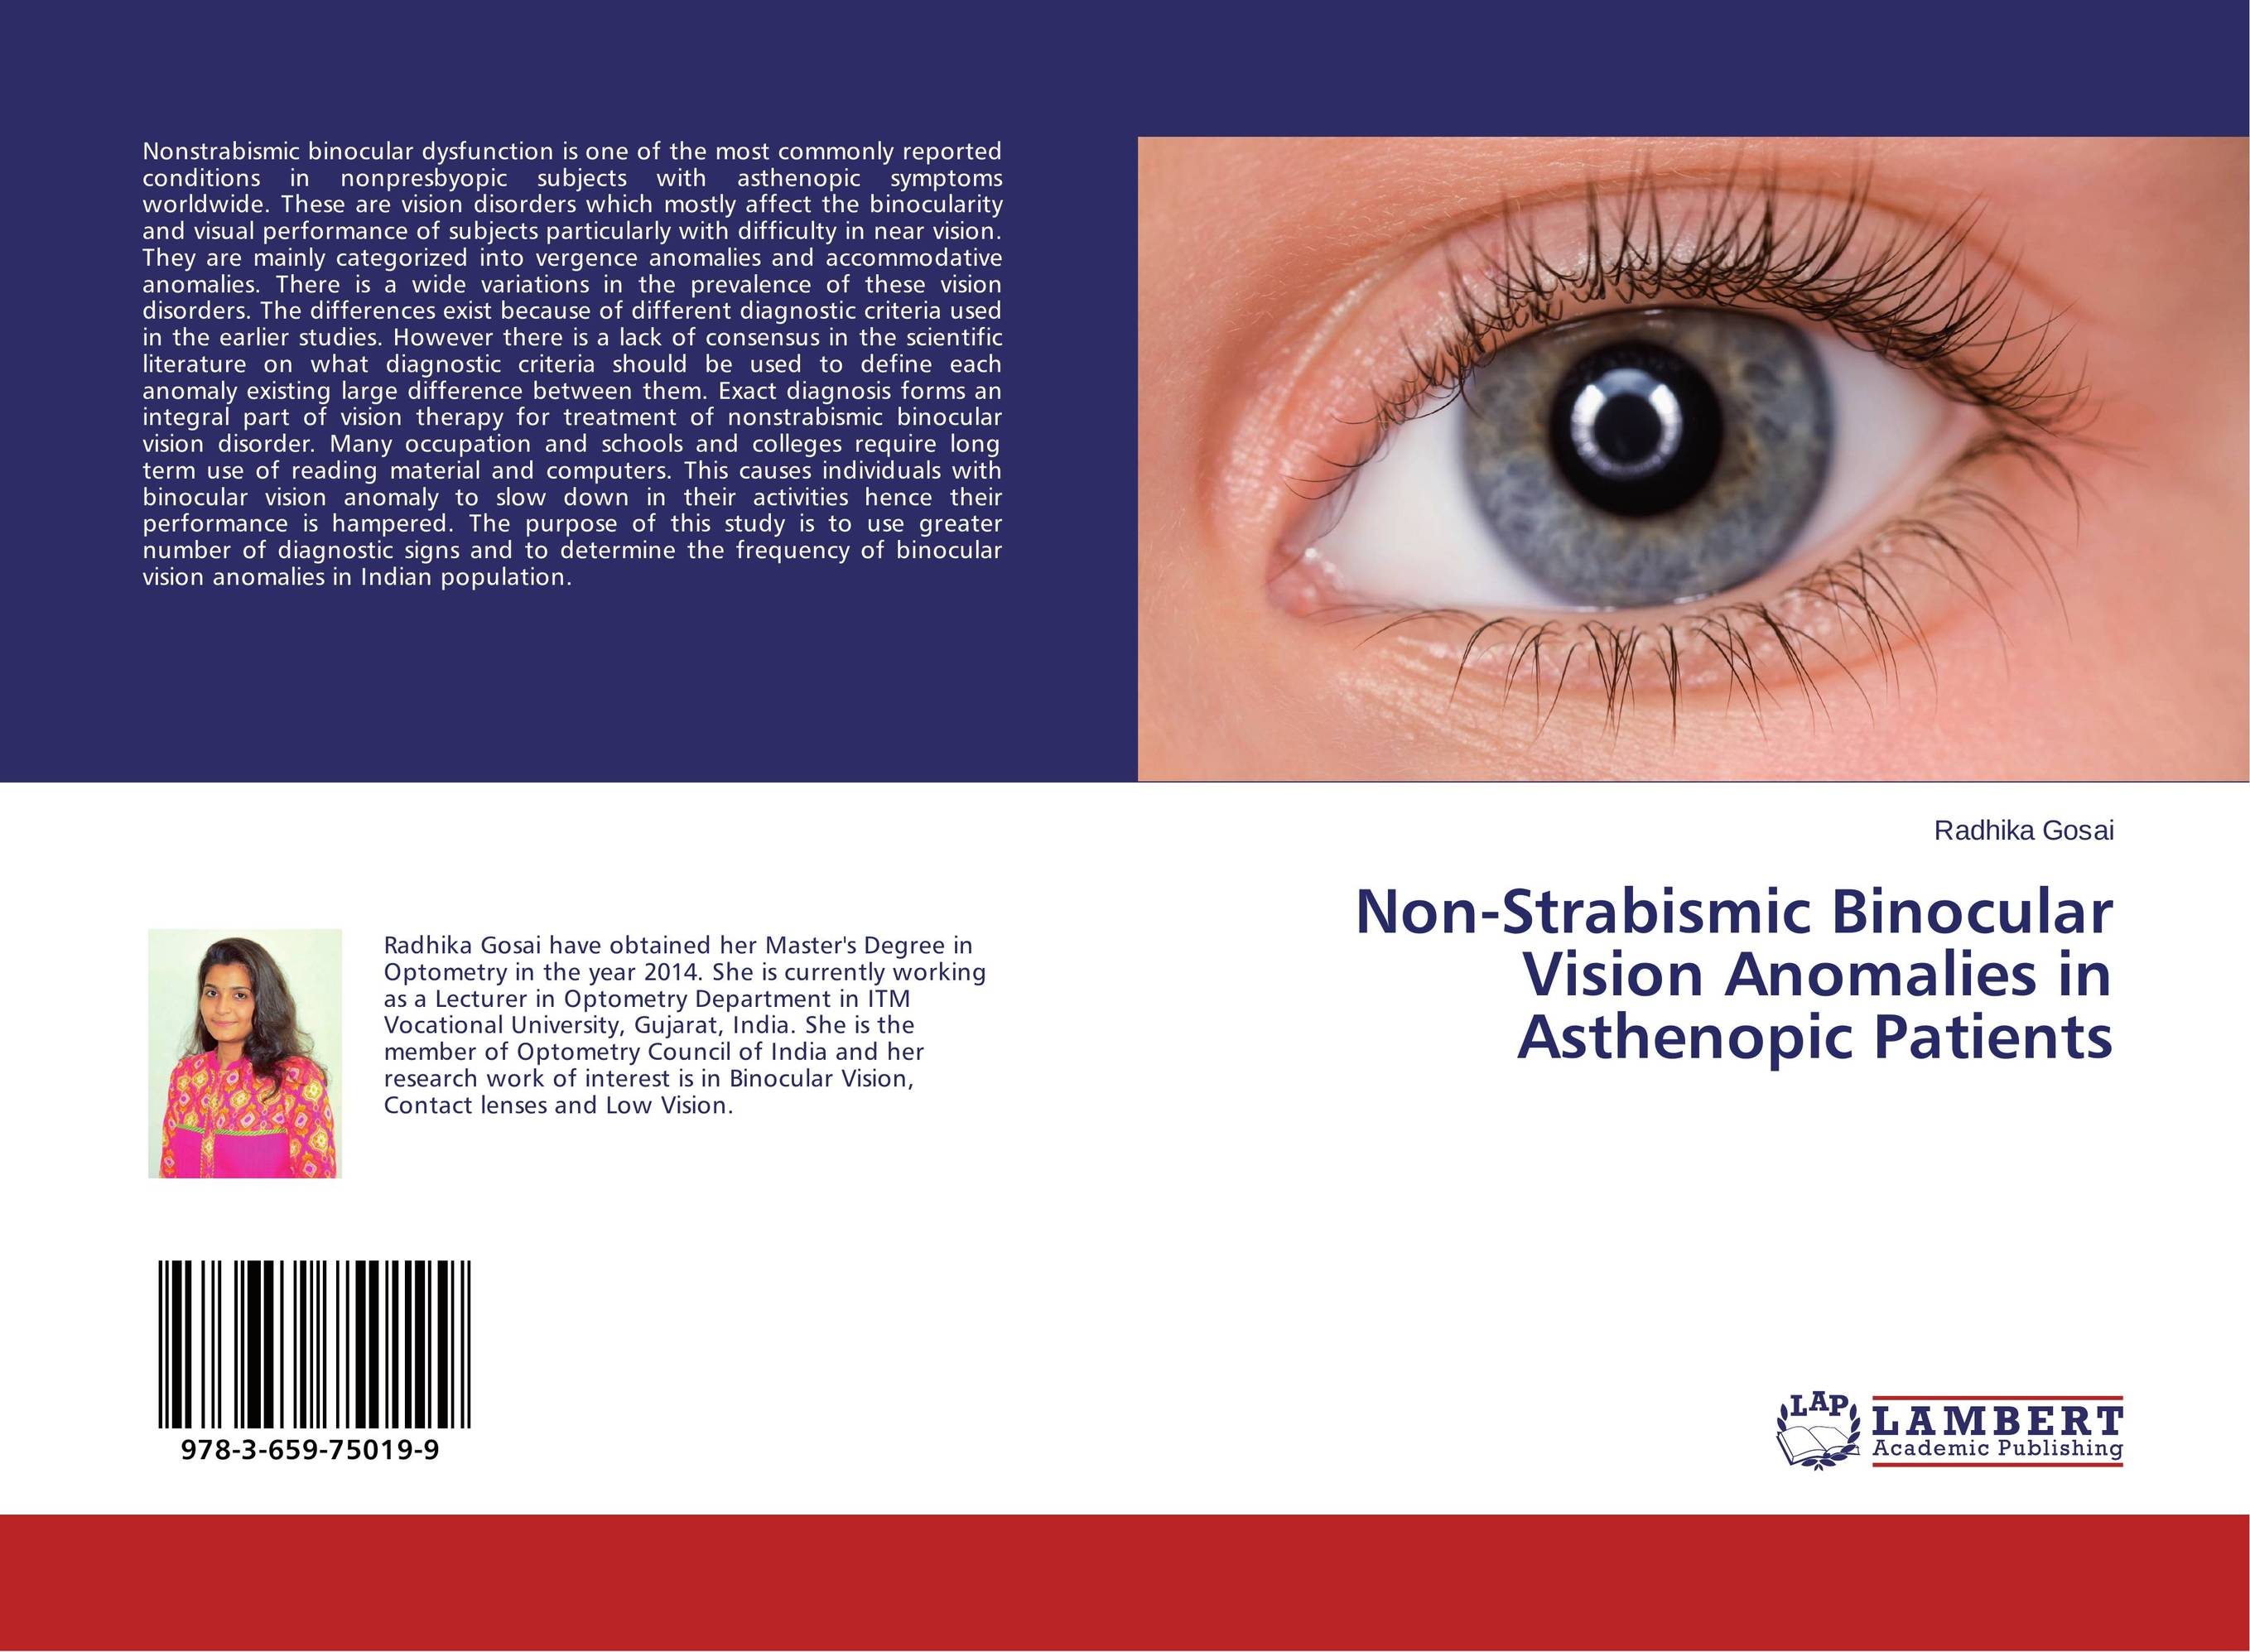 Non-Strabismic Binocular Vision Anomalies in Asthenopic Patients